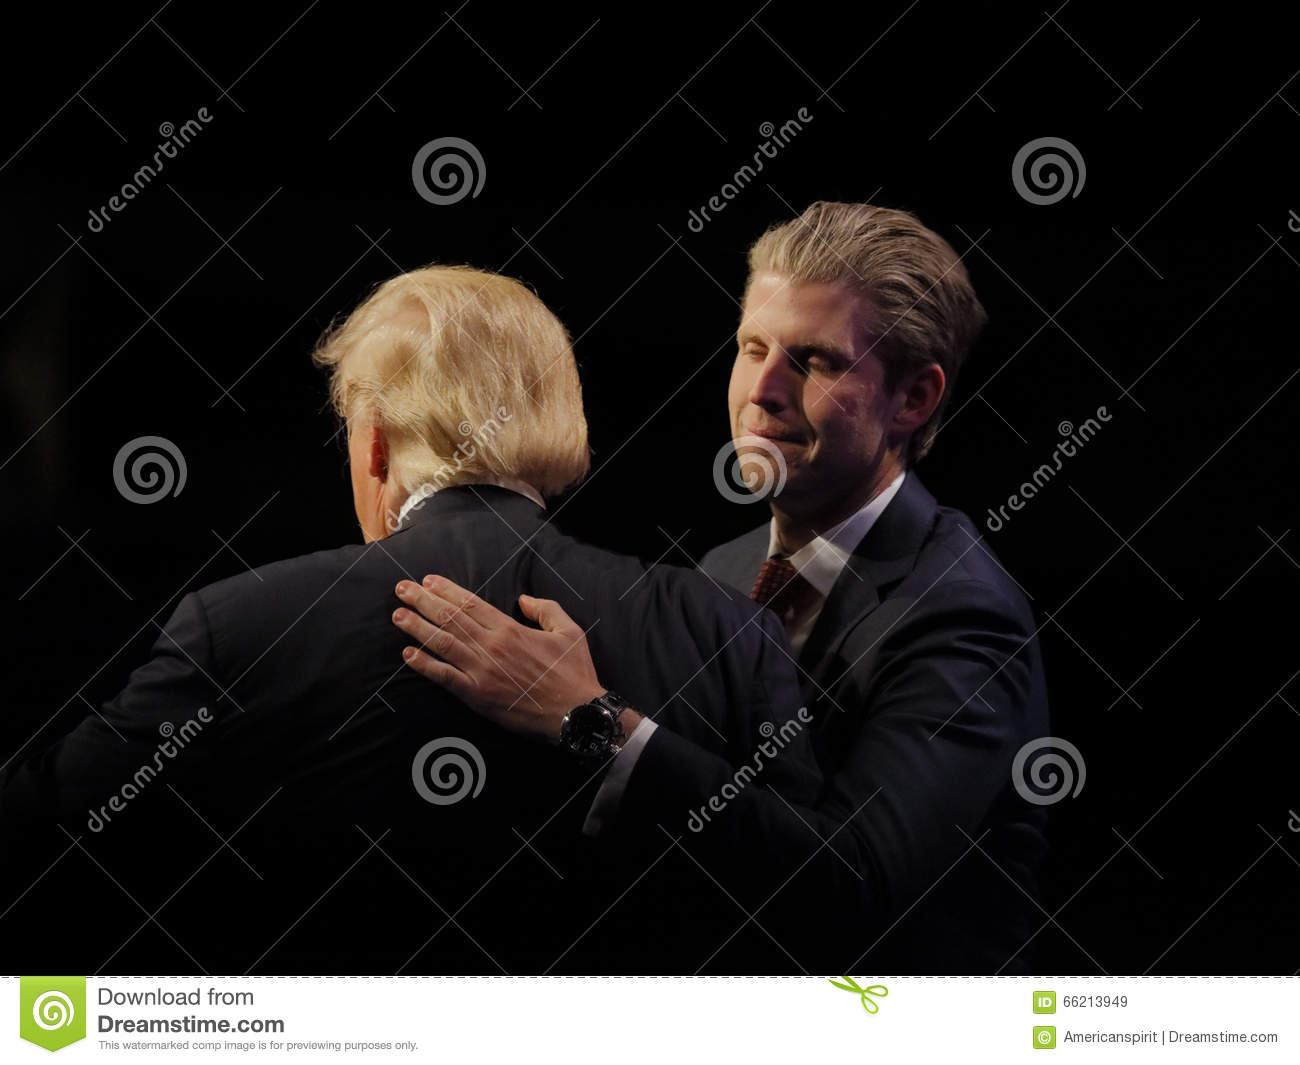 LAS VEGAS NEVADA, DECEMBER 14, 2015: Republican presidential candidate Donald and his son, Eric Trump at campaign event at Westgat